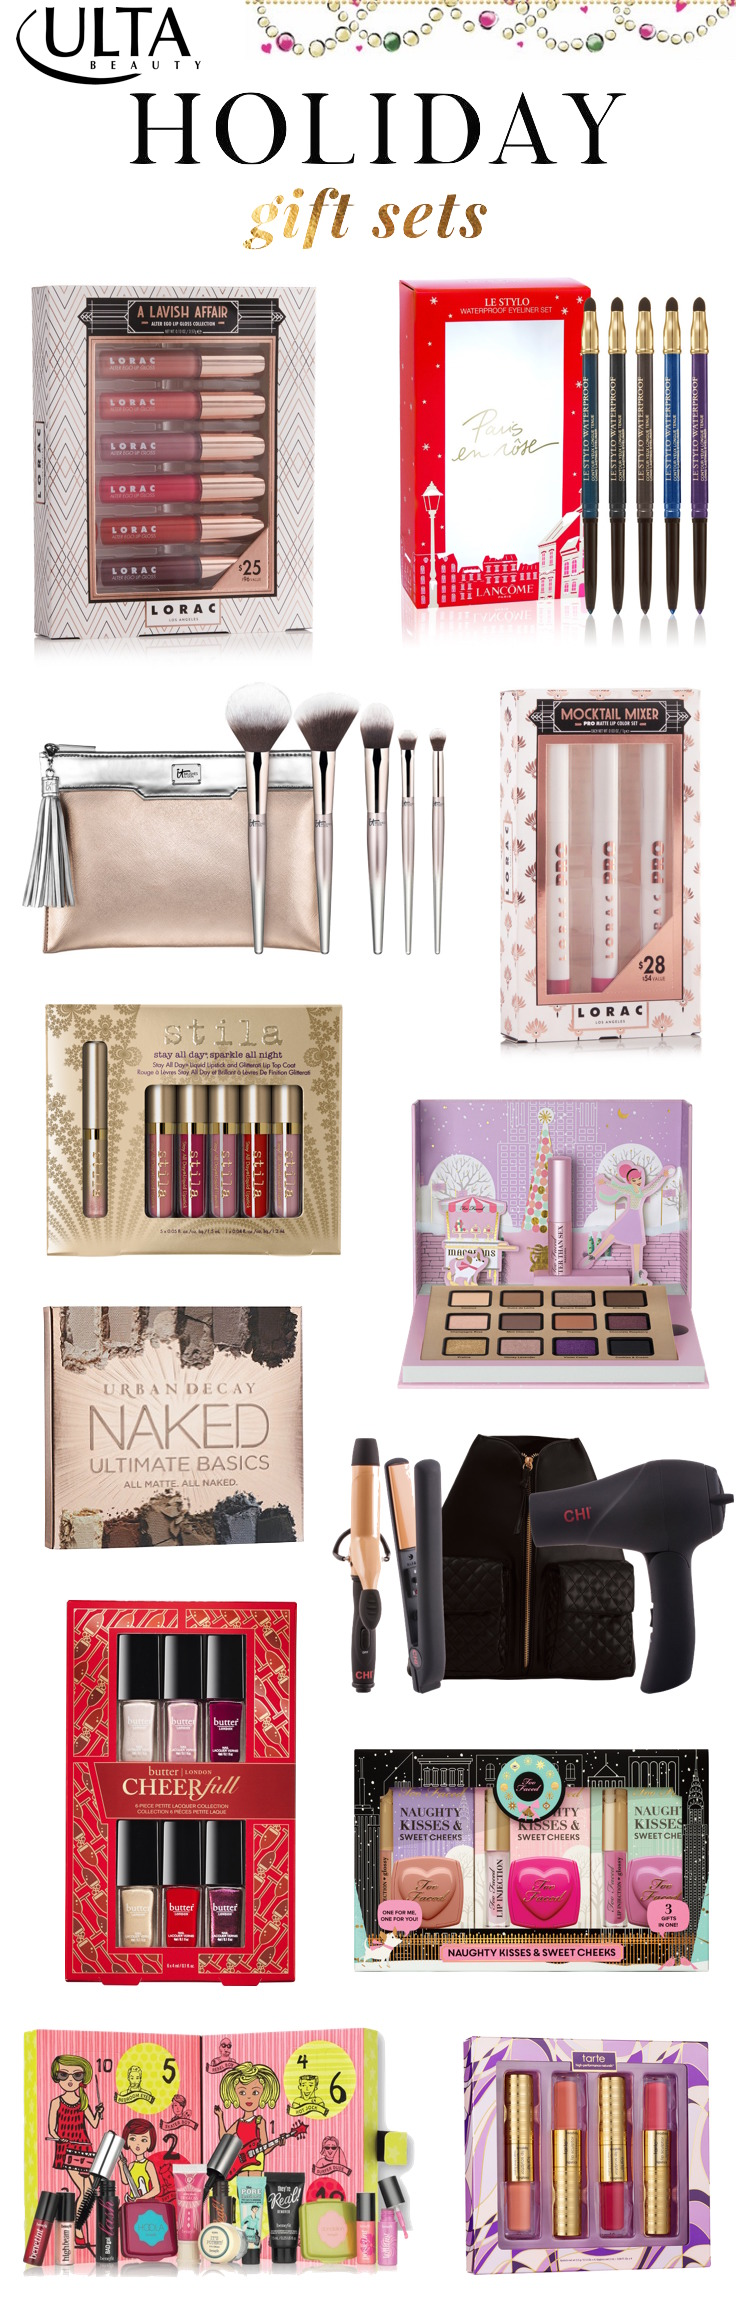 The must-have holiday 2016 gift sets at Ulta! Click through to see the full list!